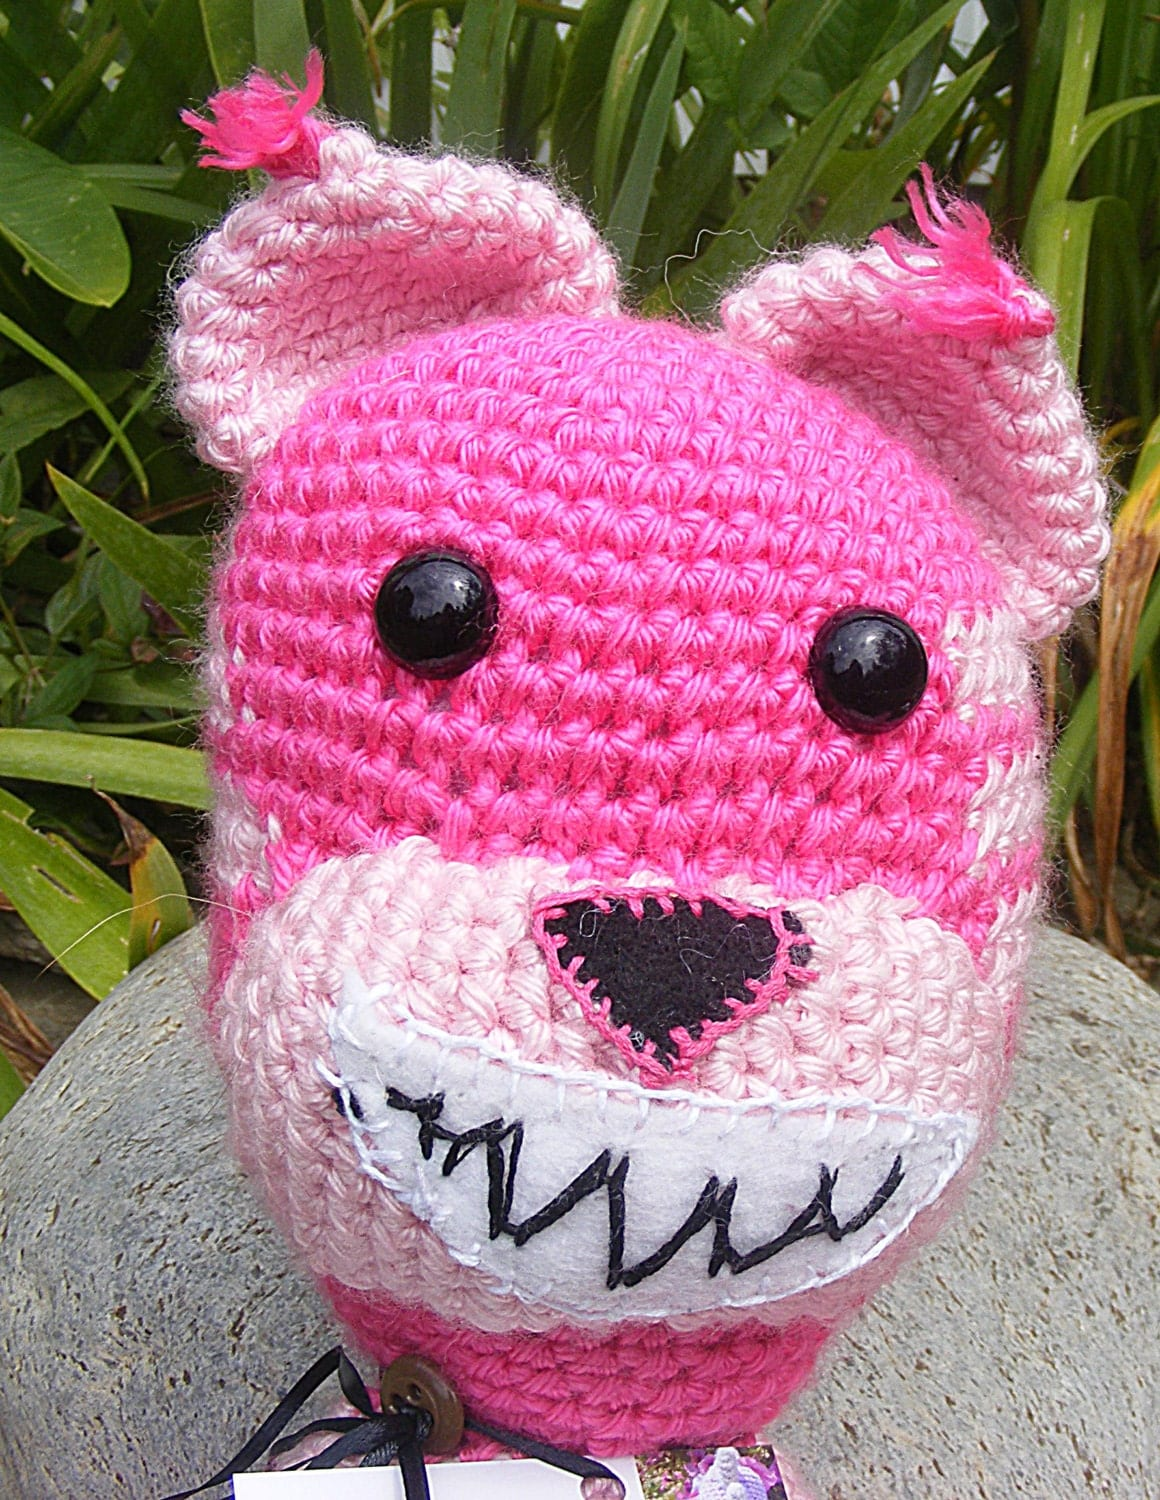 Cheshire Cat Amigurumi Crochet Pattern Free : CHESHIRE CAT AMIGURUMI CROCHET PATTERN FREE CROCHET PATTERNS